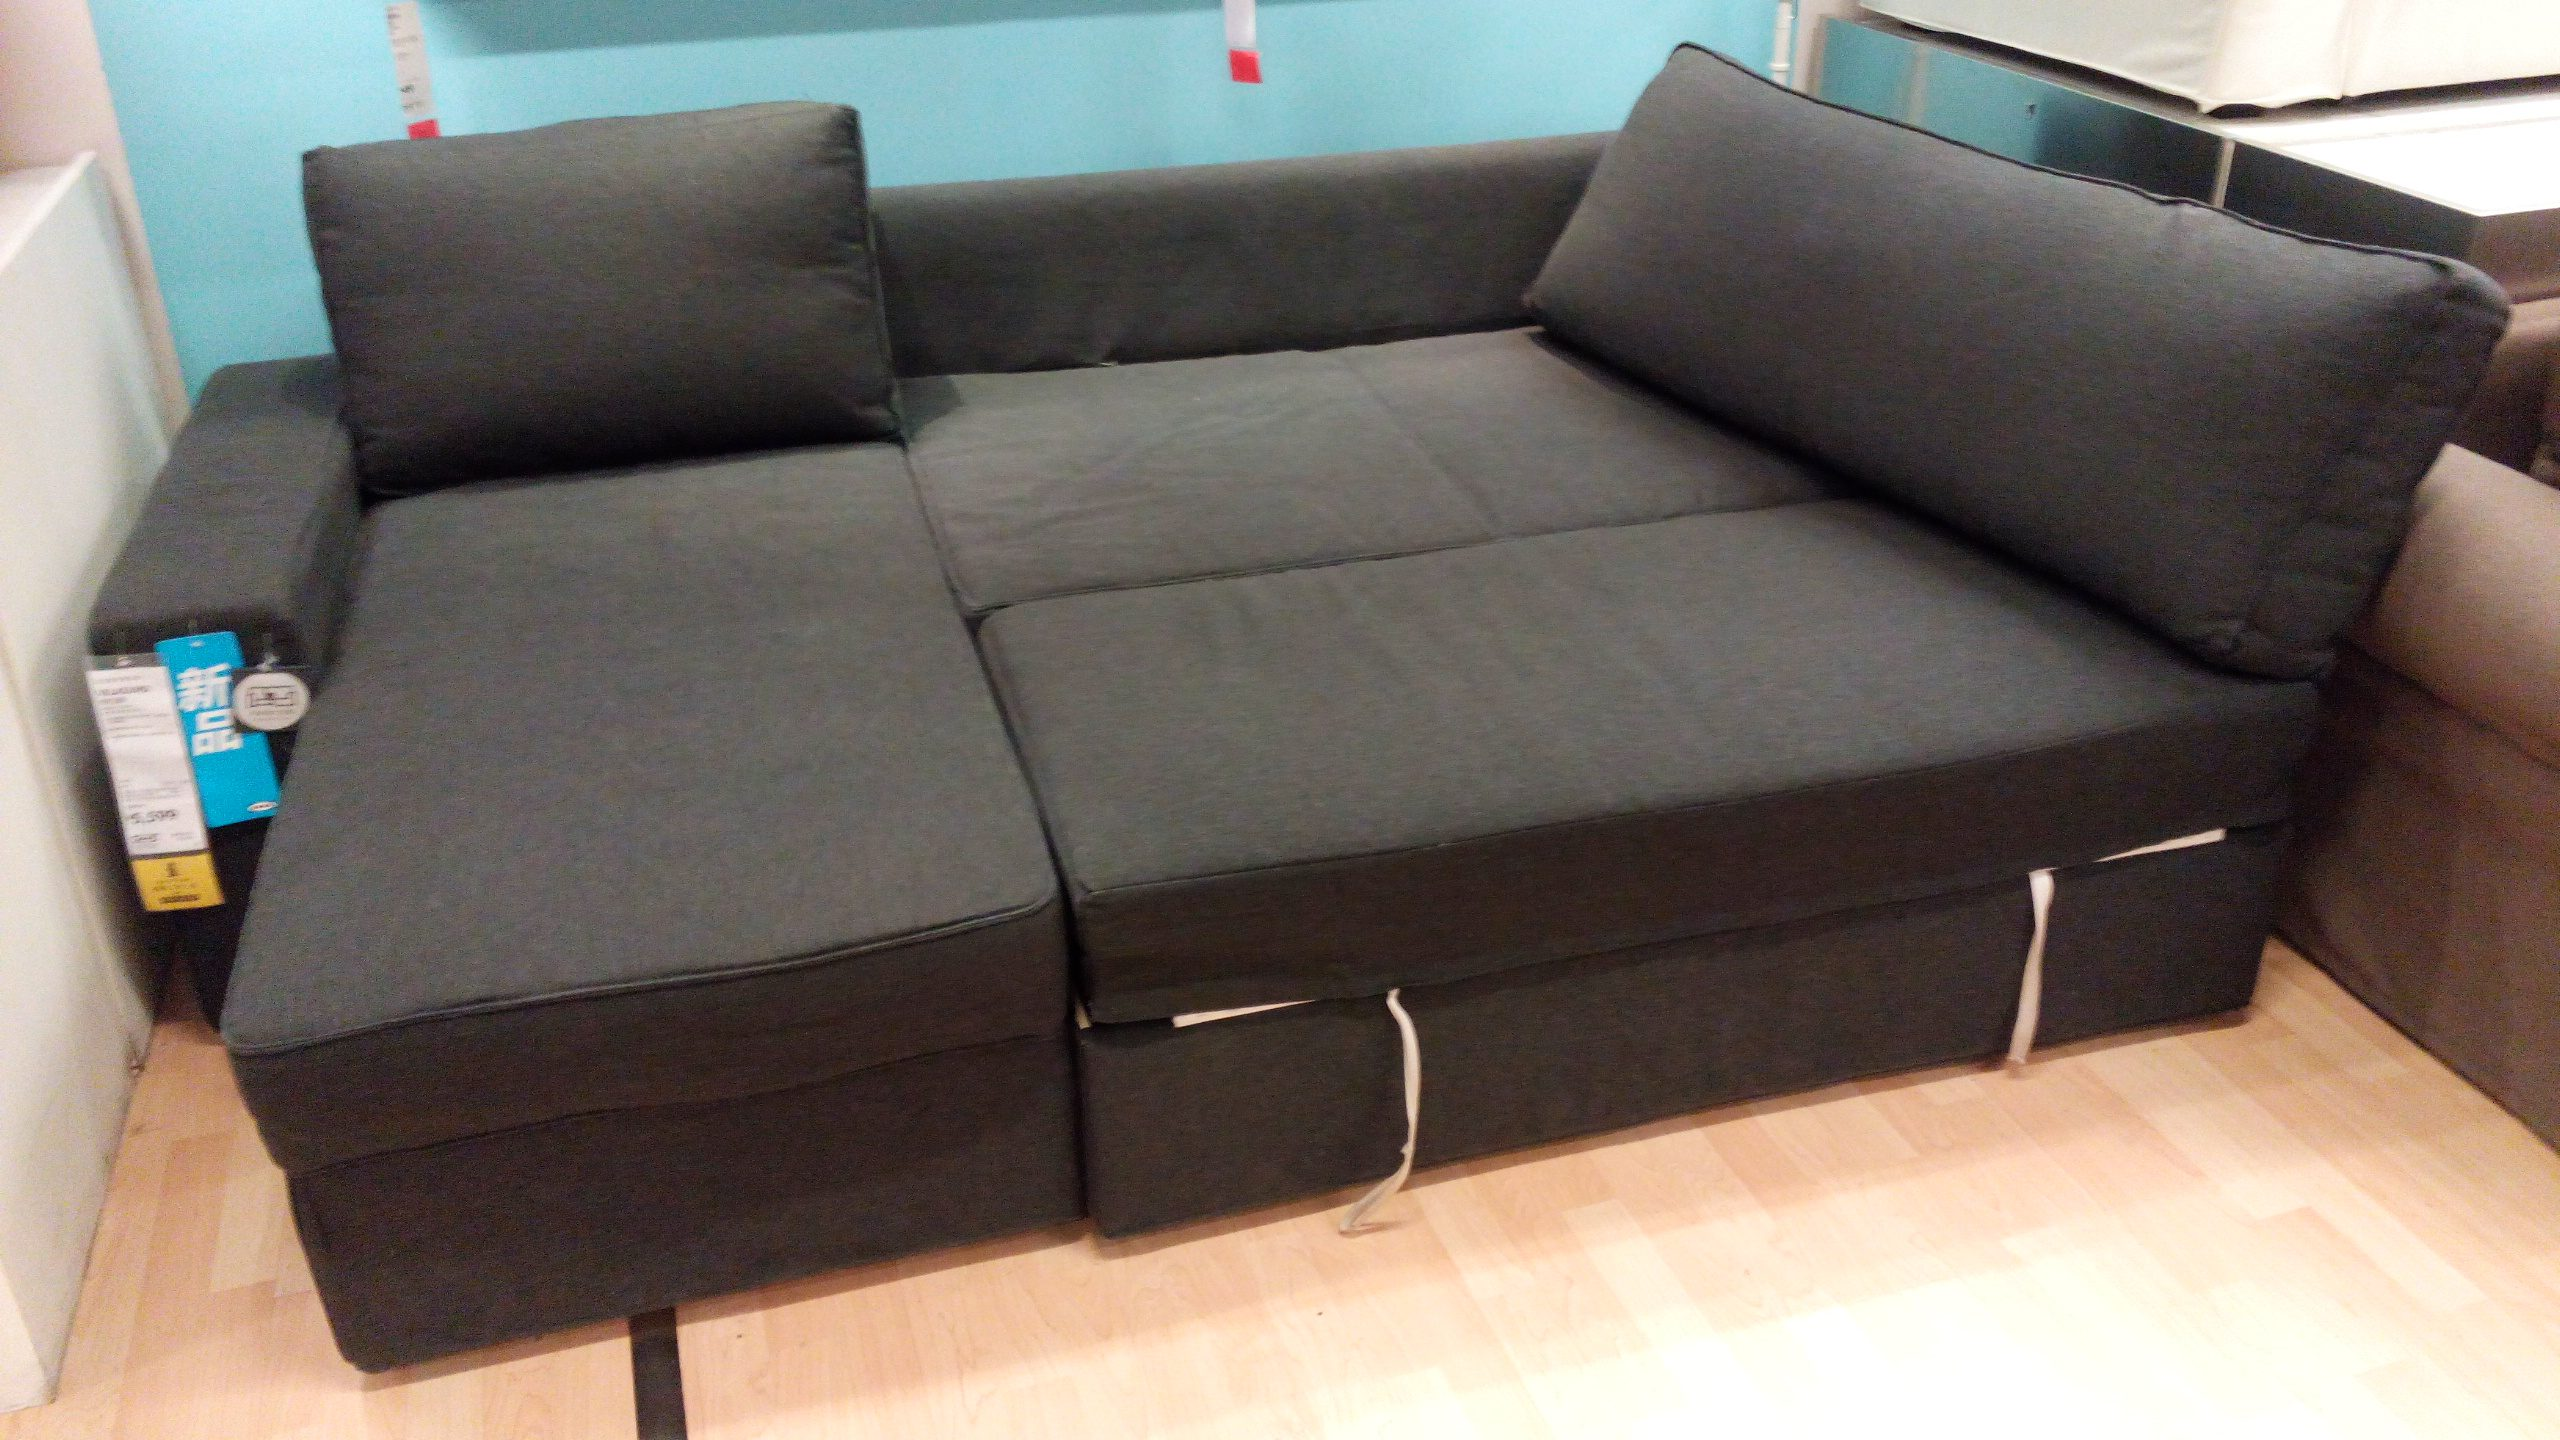 Bettsofa Ikea Bewertung Ikea Vilasund And Backabro Review Return Of The Sofa Bed